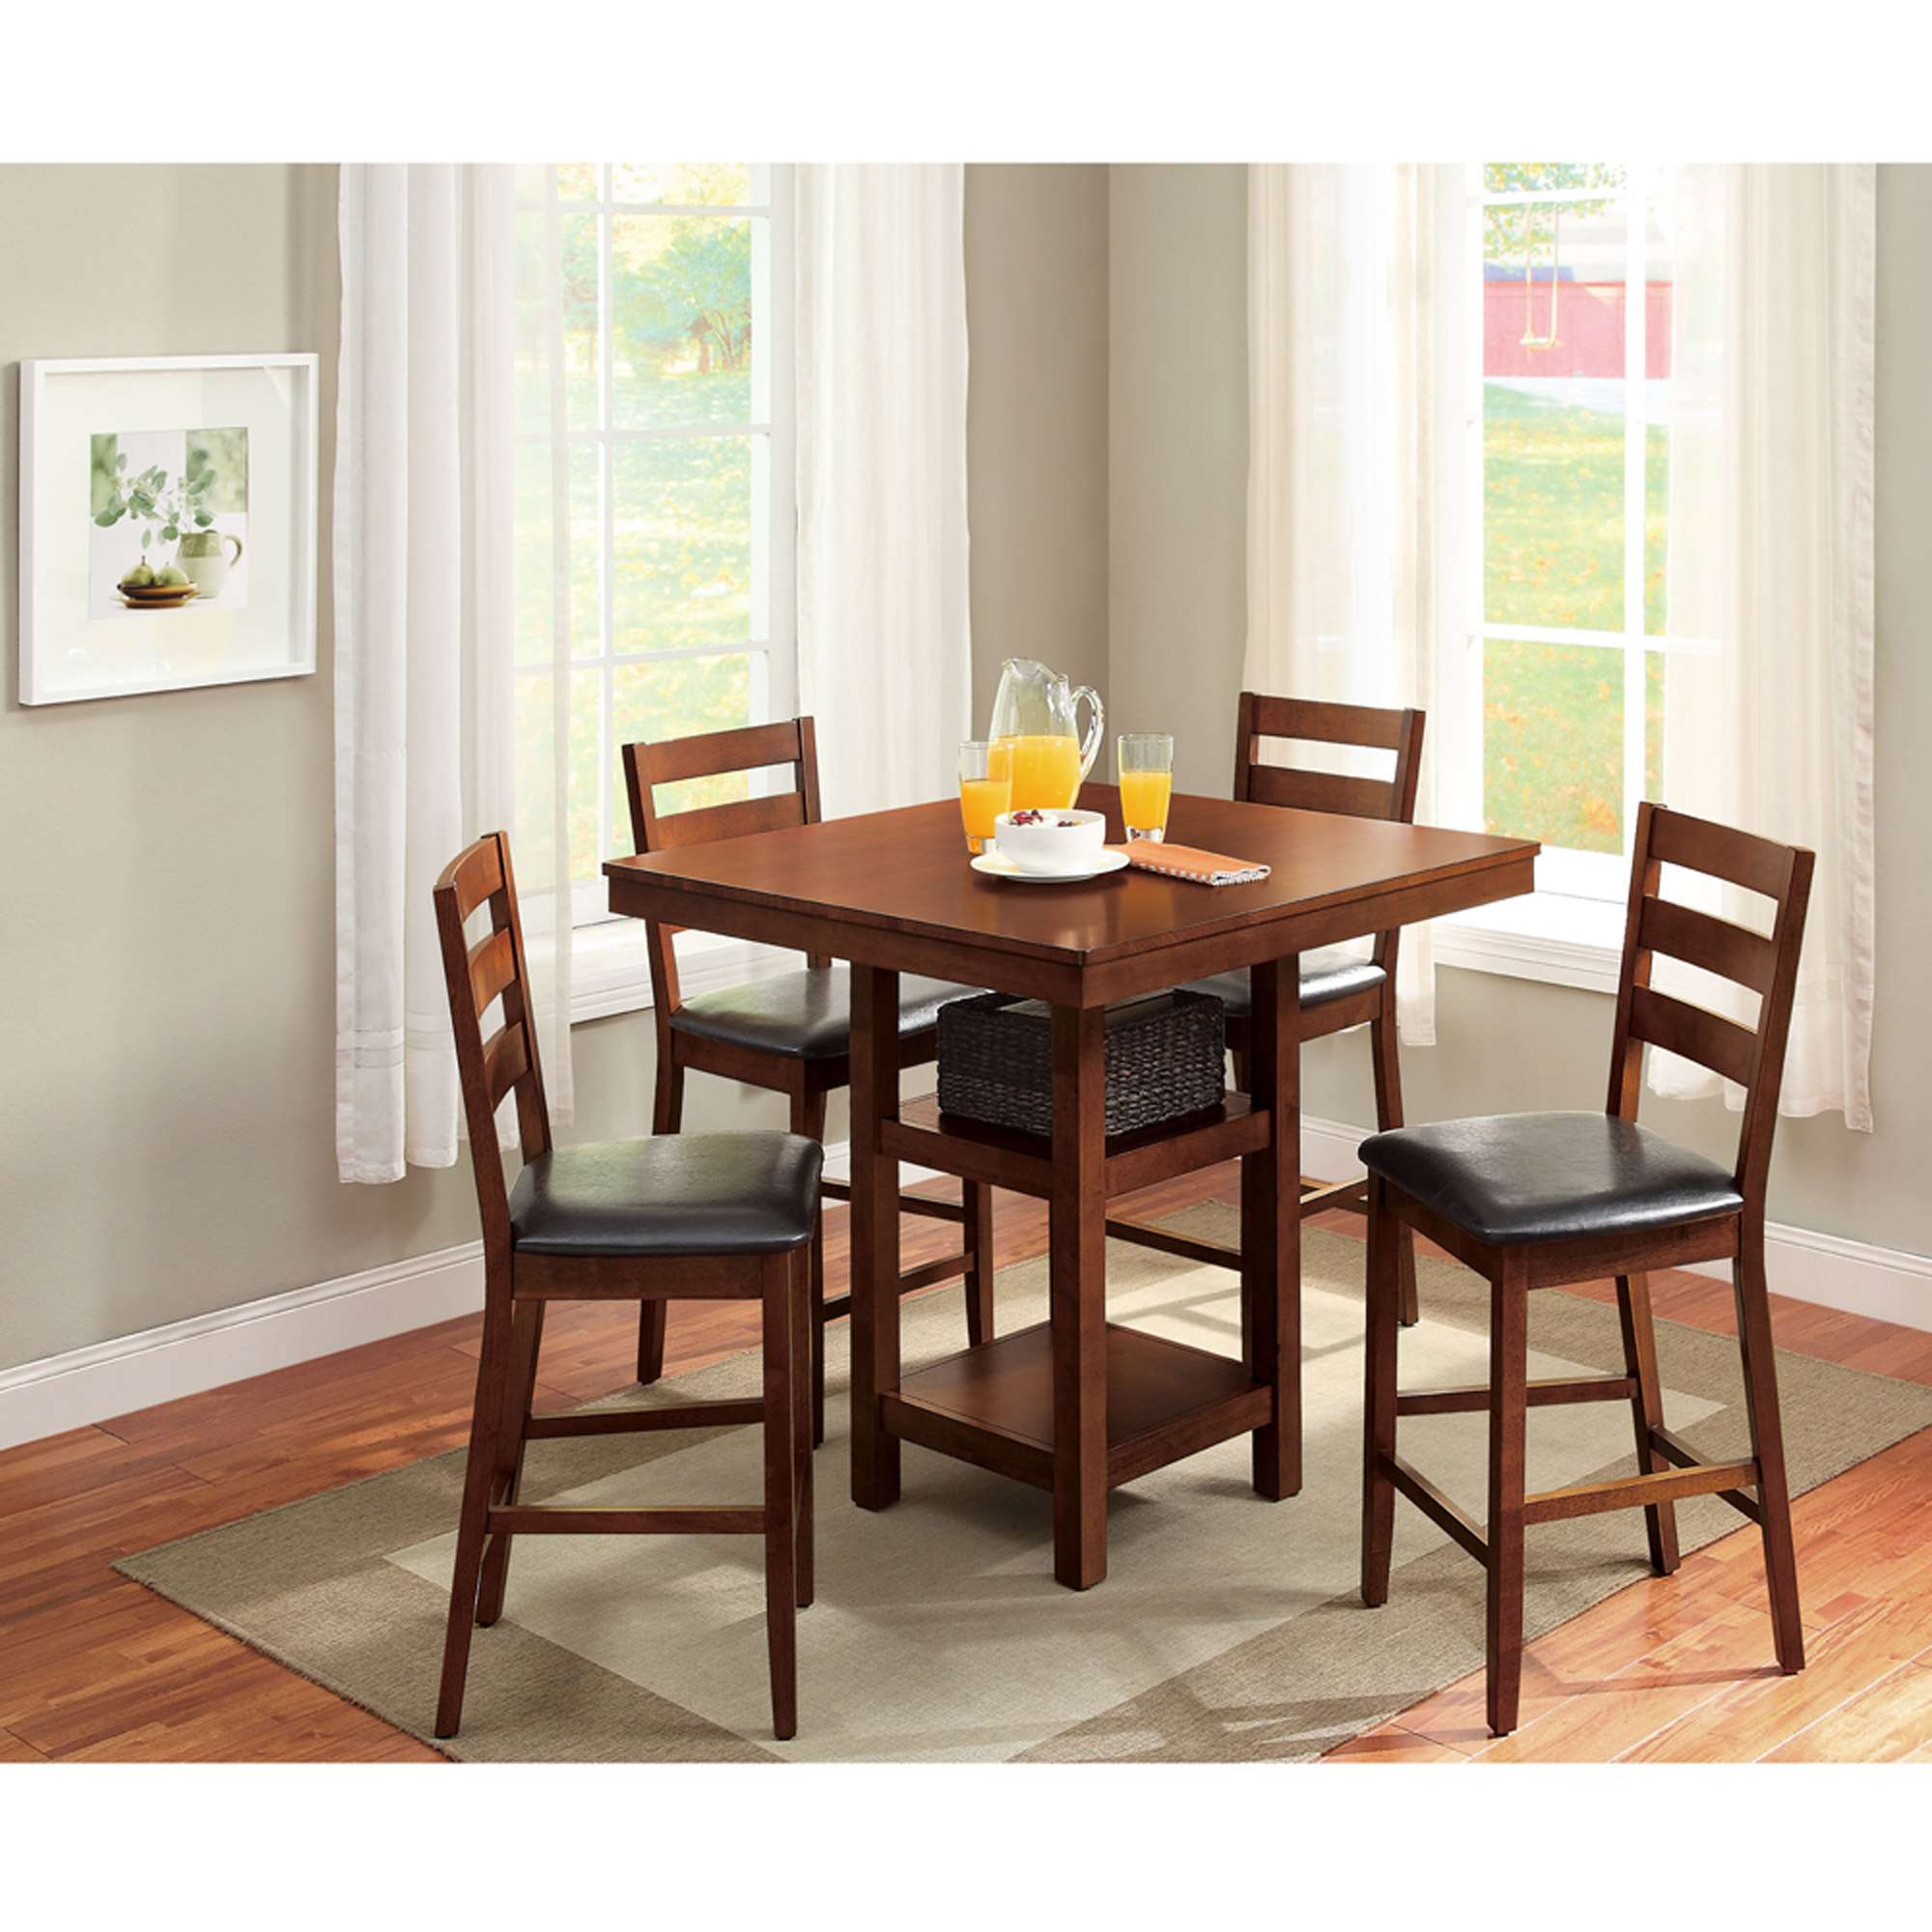 kitchen dining furniture walmartcom - Dining Room Table Height